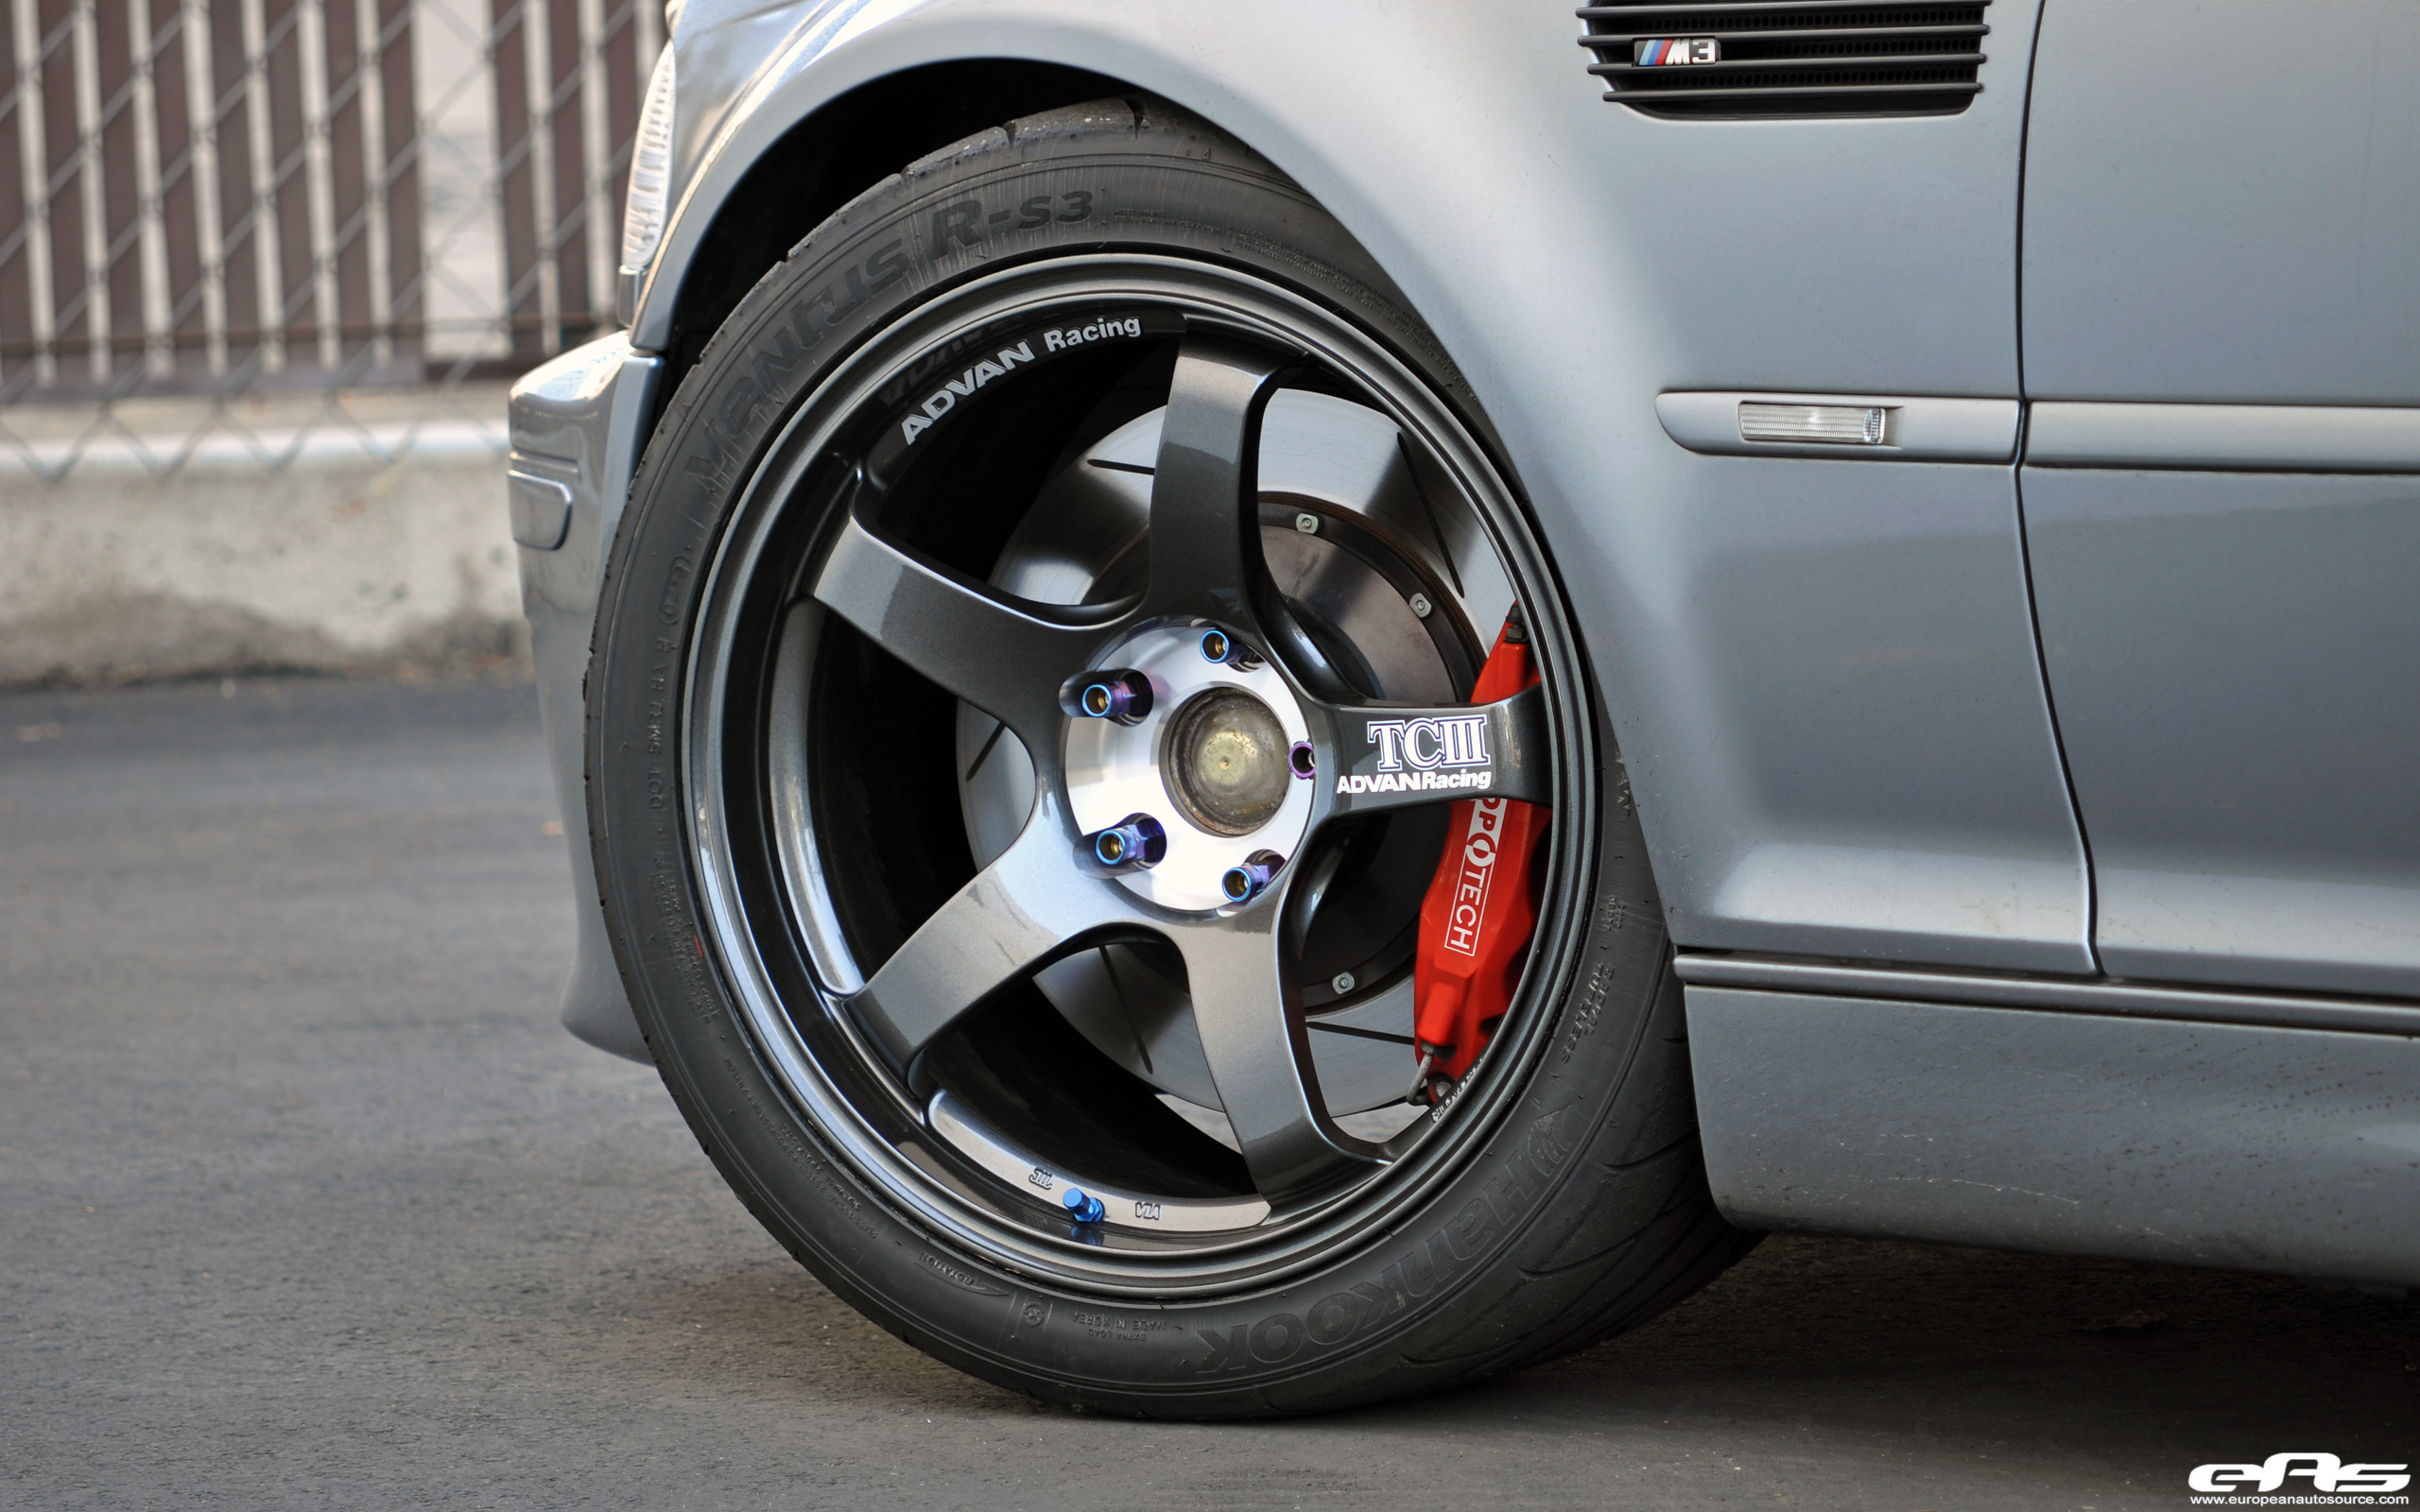 Silver Gray E46 M3 With Advan Tciii Wheels Bmw Performance Parts